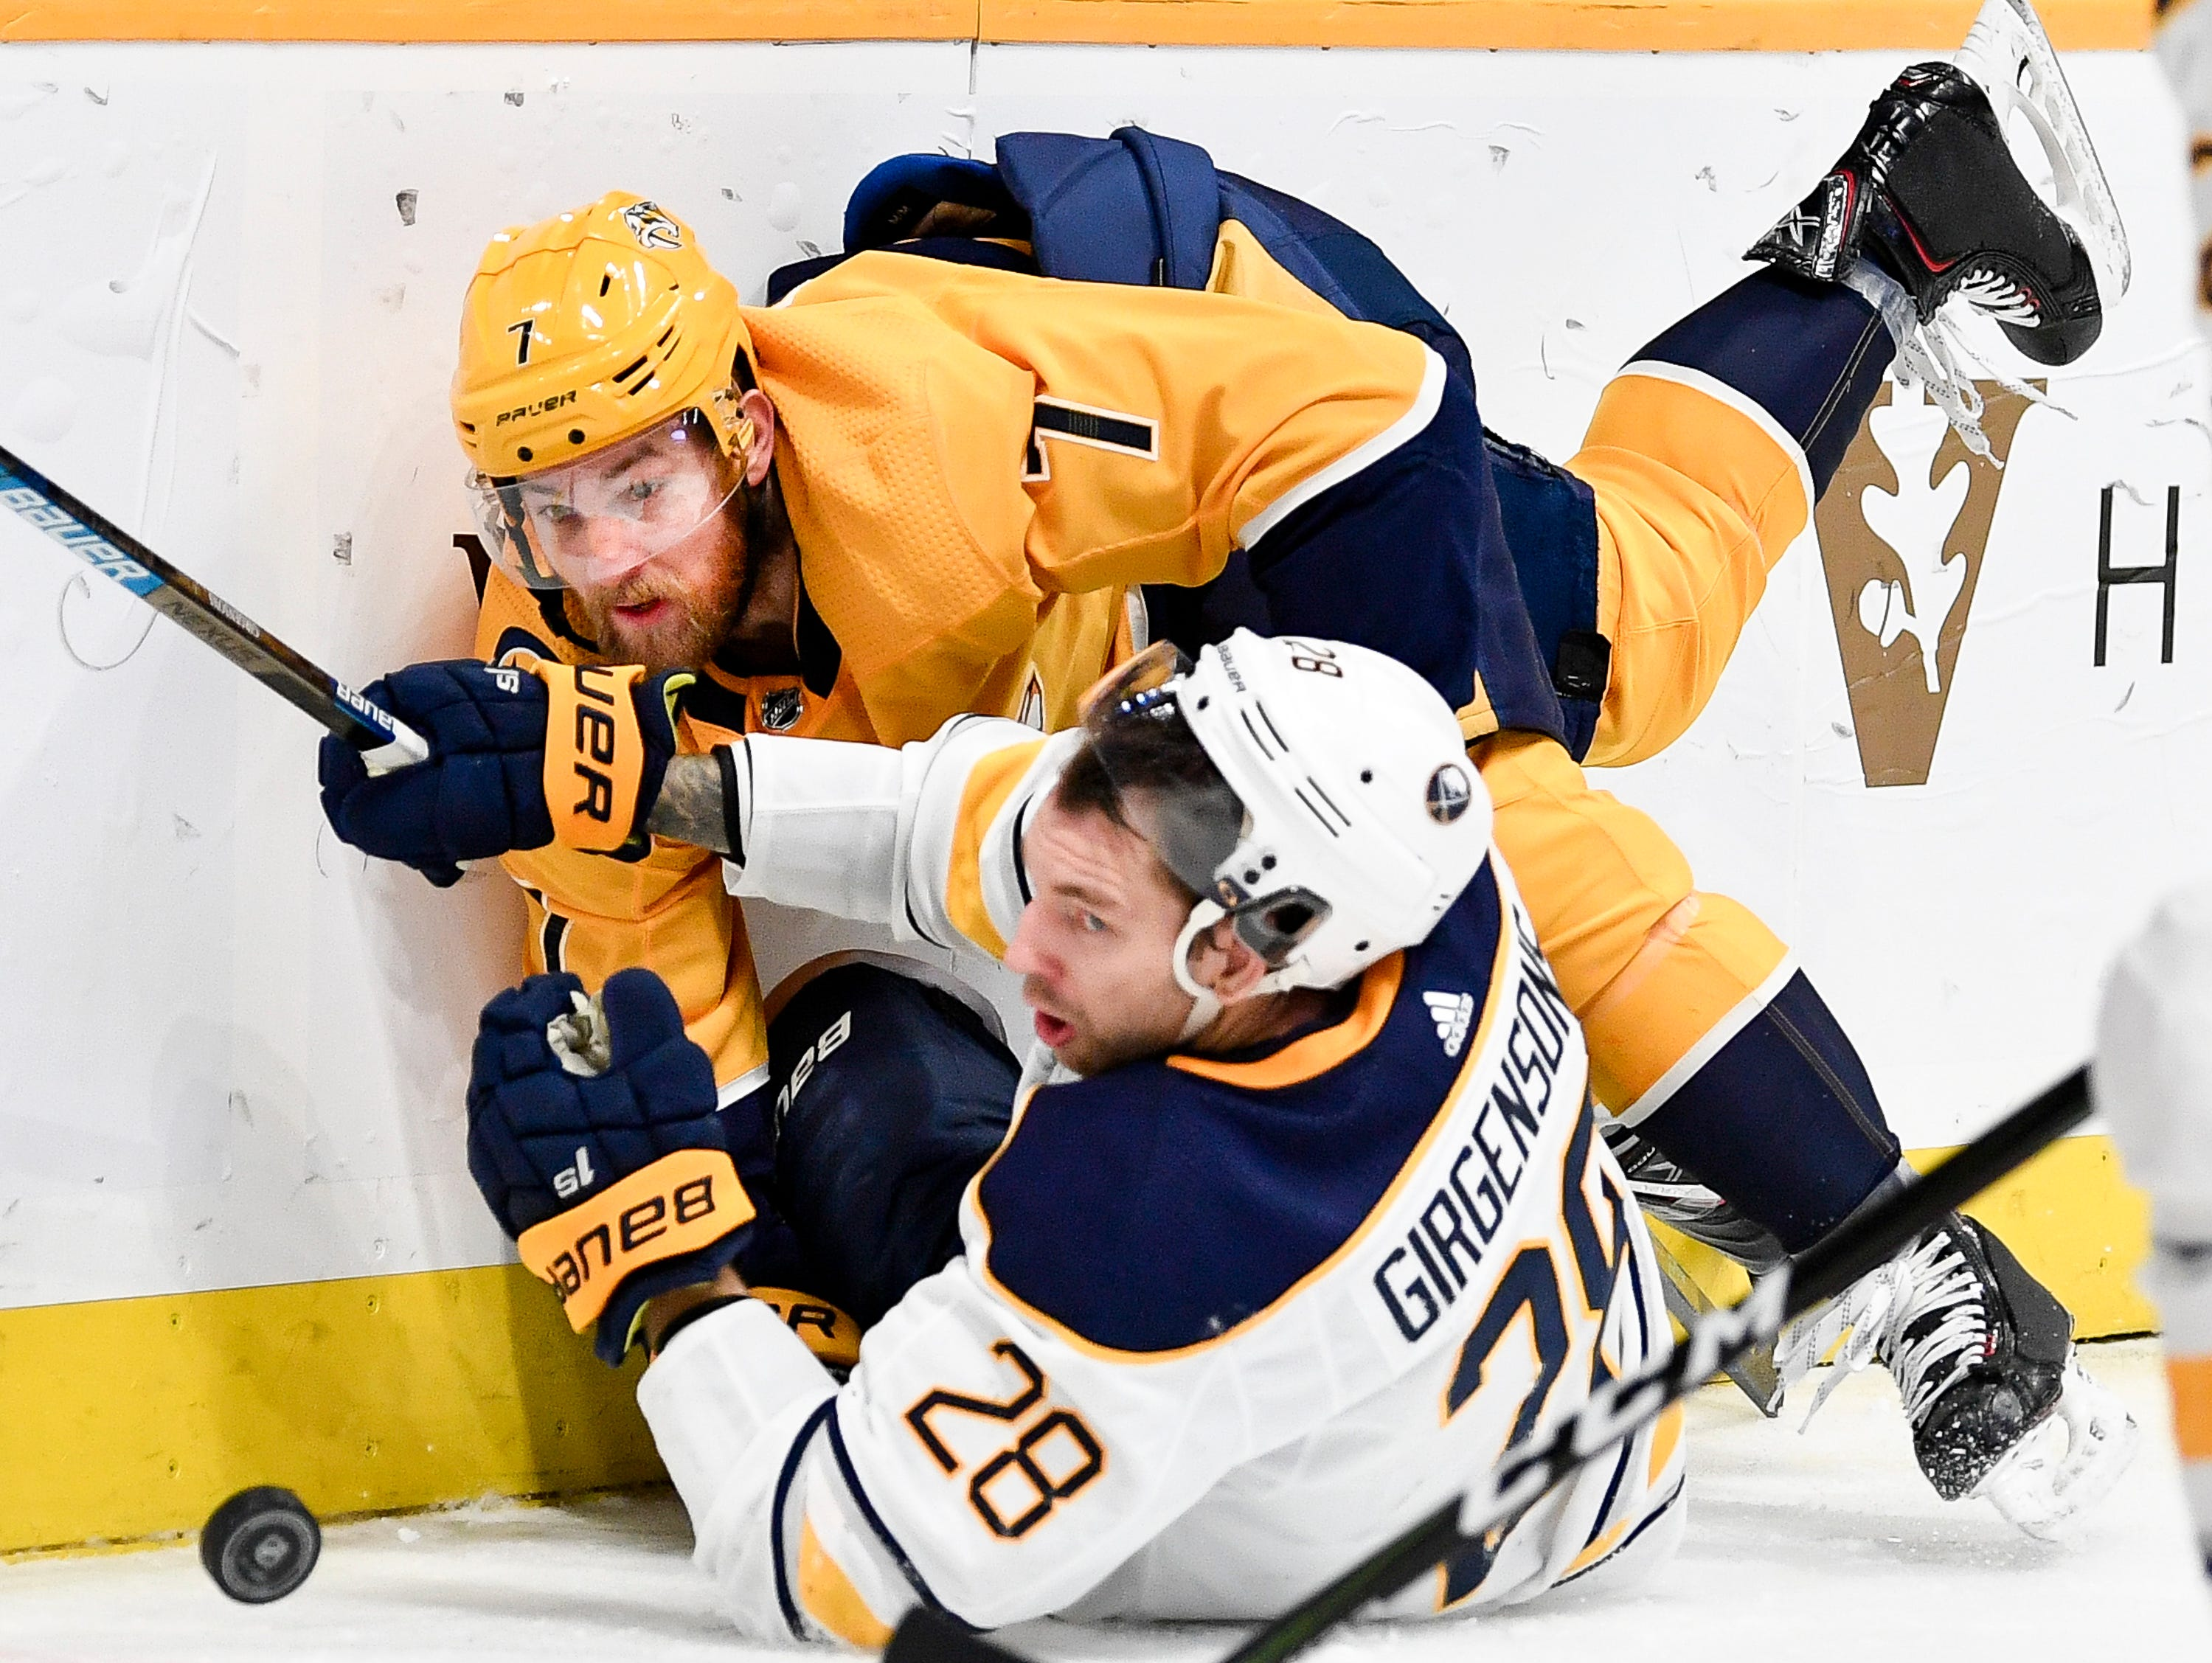 Nashville Predators defenseman Yannick Weber (7) collides with Buffalo Sabres center Zemgus Girgensons (28) during the second period at Bridgestone Arena in Nashville, Tenn., Monday, Dec. 3, 2018.